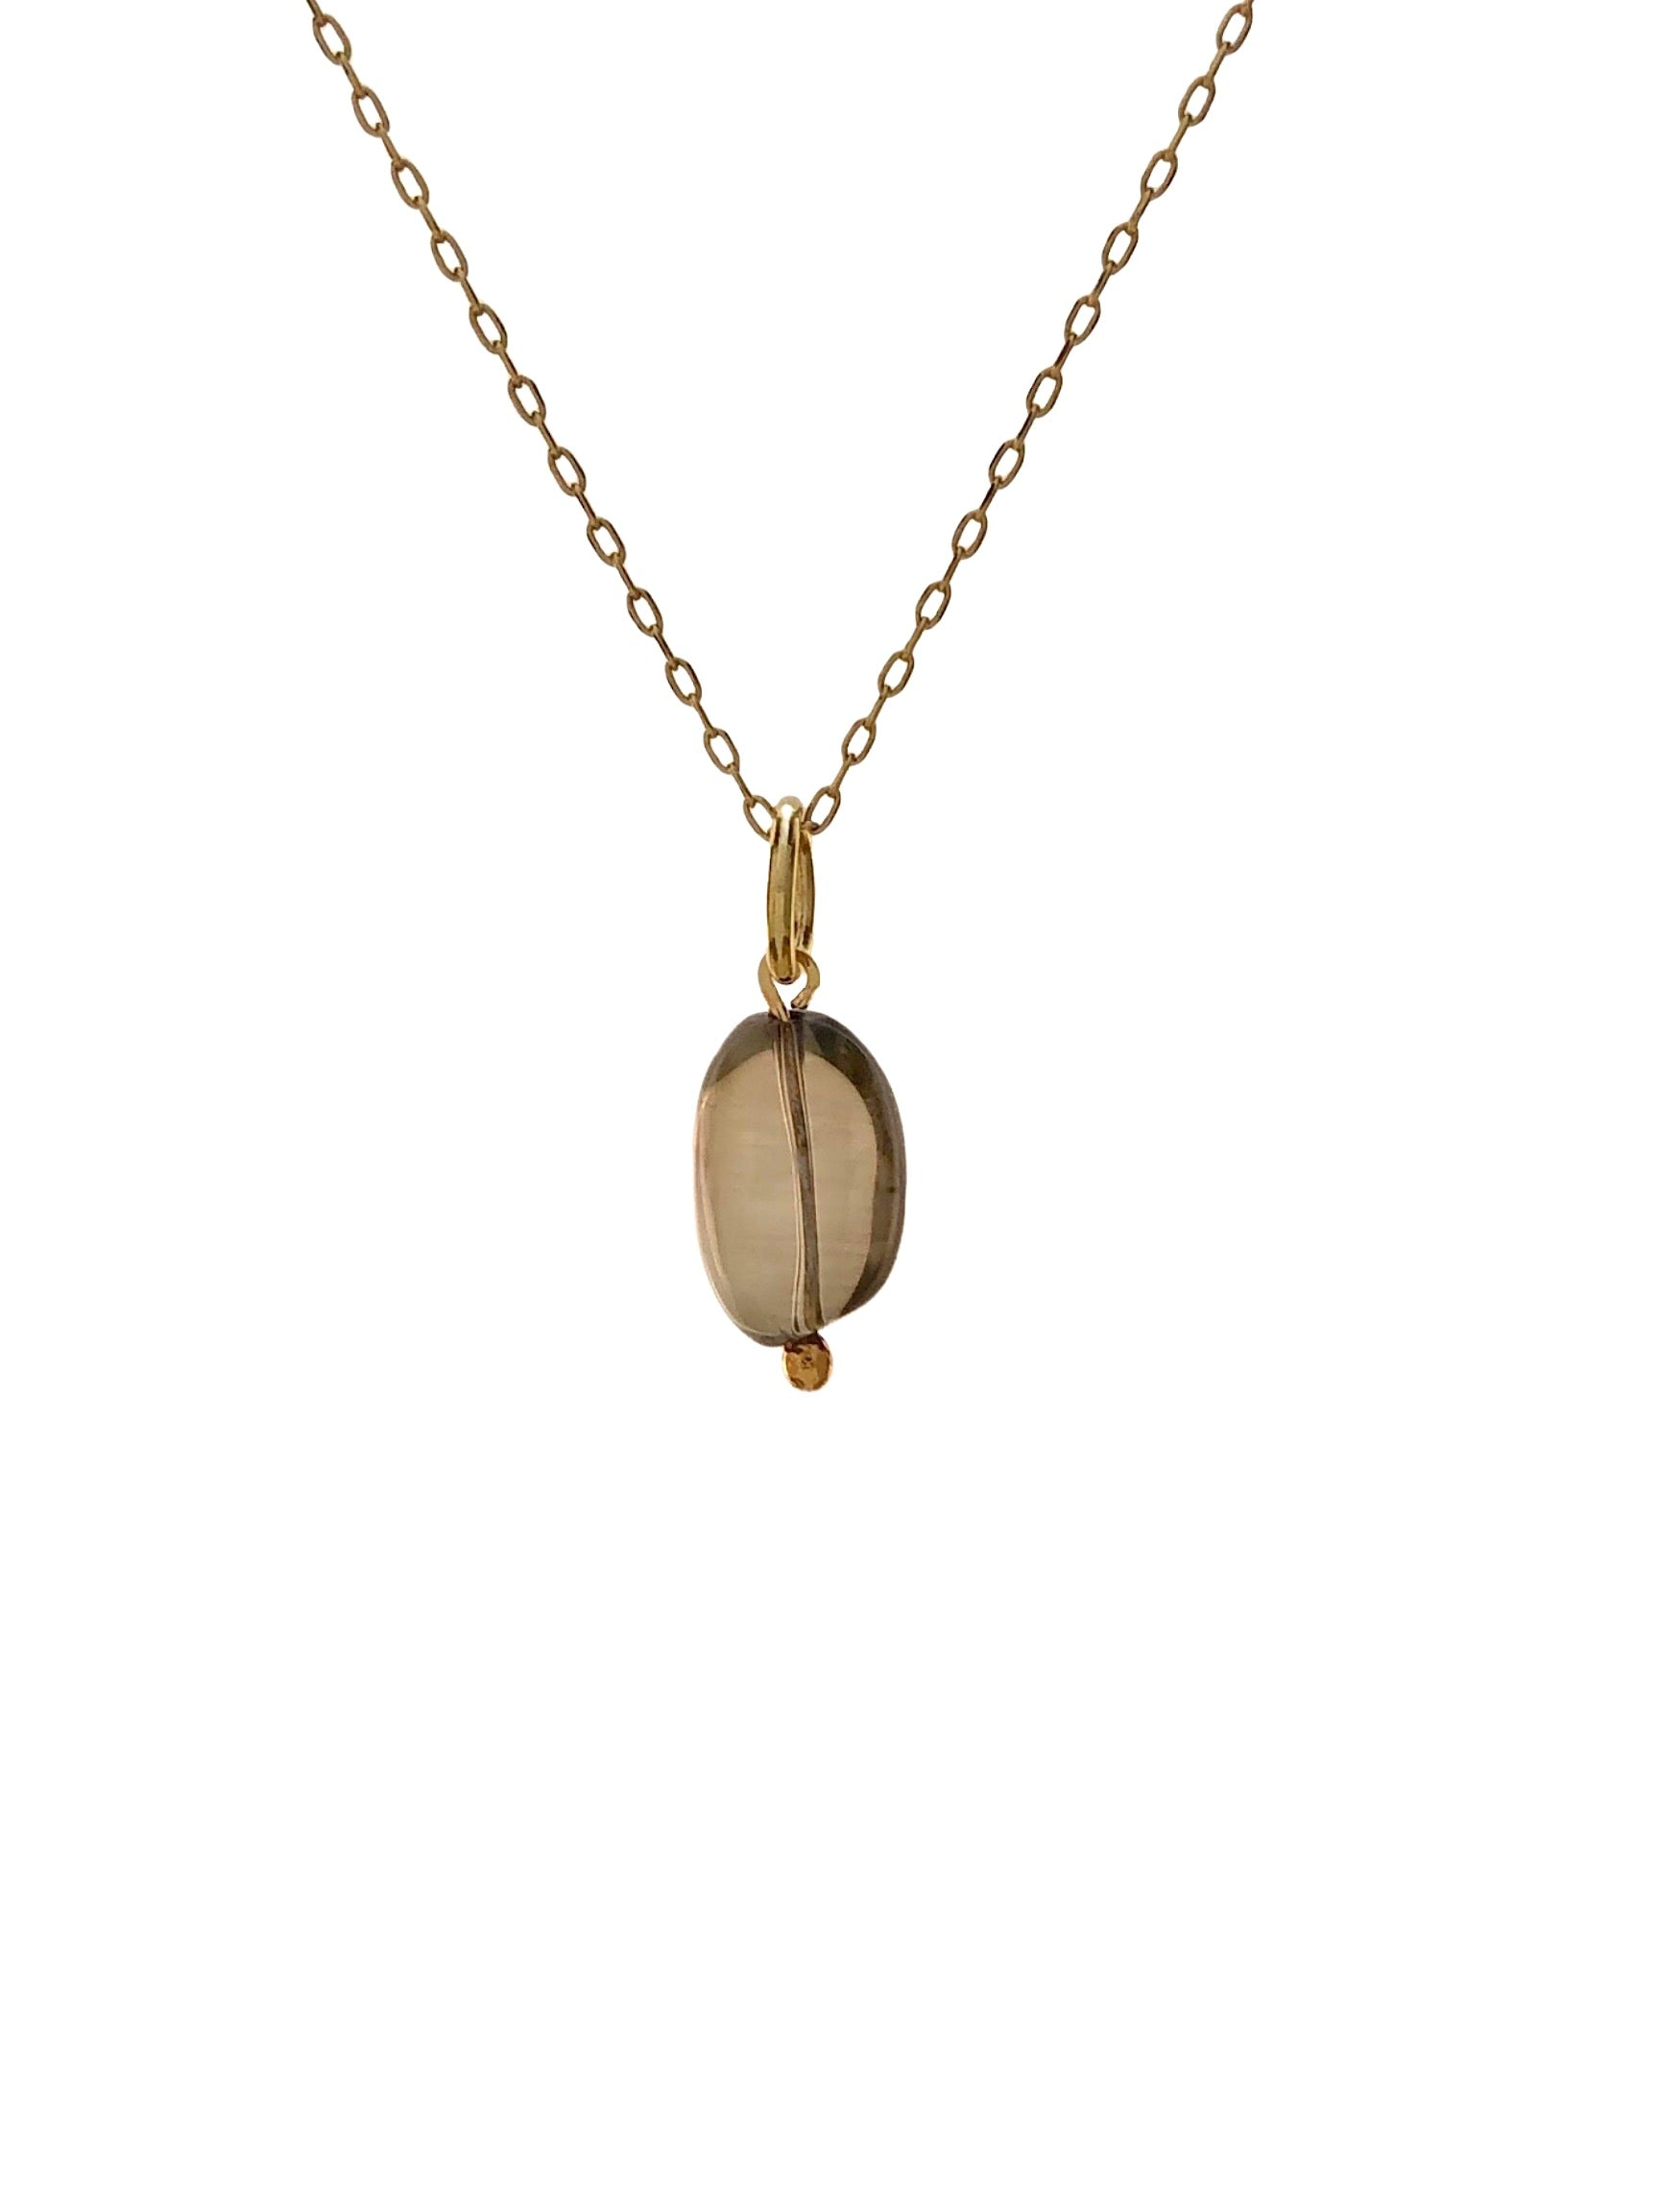 Smoky Quartz Pebble Necklace Pendant Charm-Pendant Charms-JAREDJAMIN Jewelry Online-JARED JAMIN